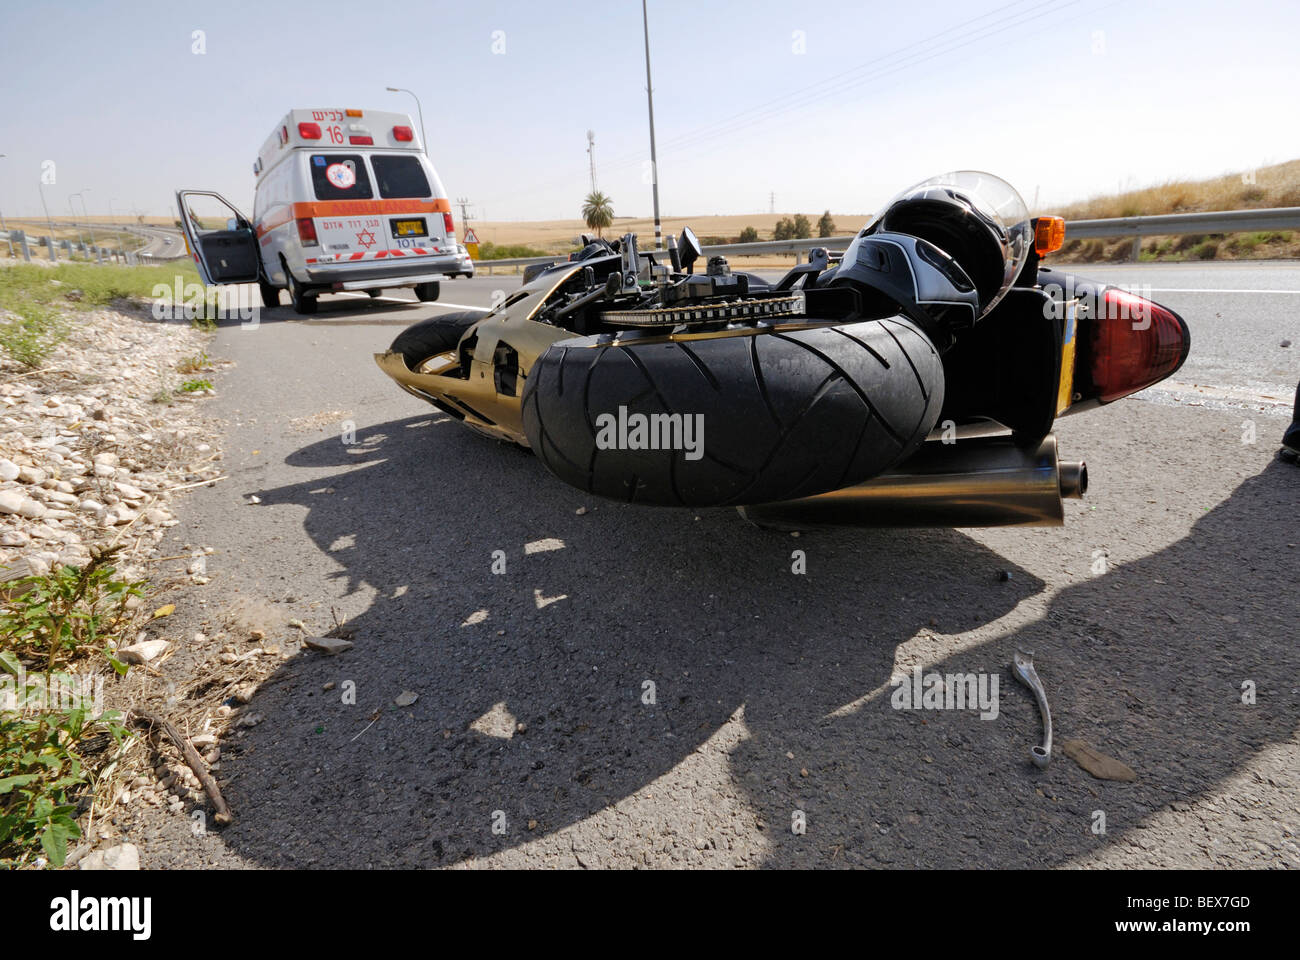 Israel, A motorbike lies on the road after a traffic collision Ambulance in the background - Stock Image